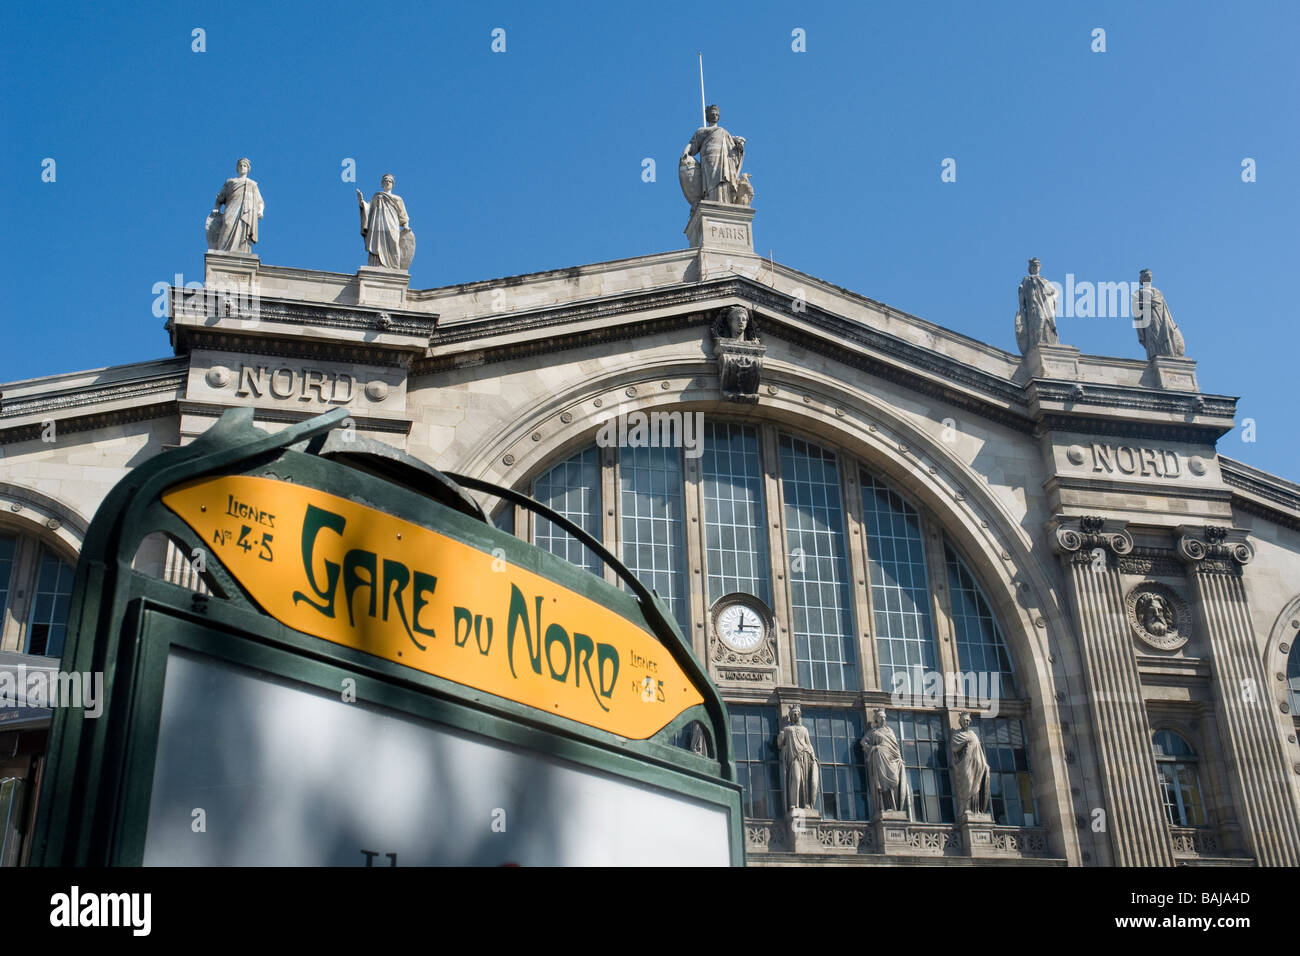 gare du nord north railway station of paris paris france and stock photo royalty free image. Black Bedroom Furniture Sets. Home Design Ideas